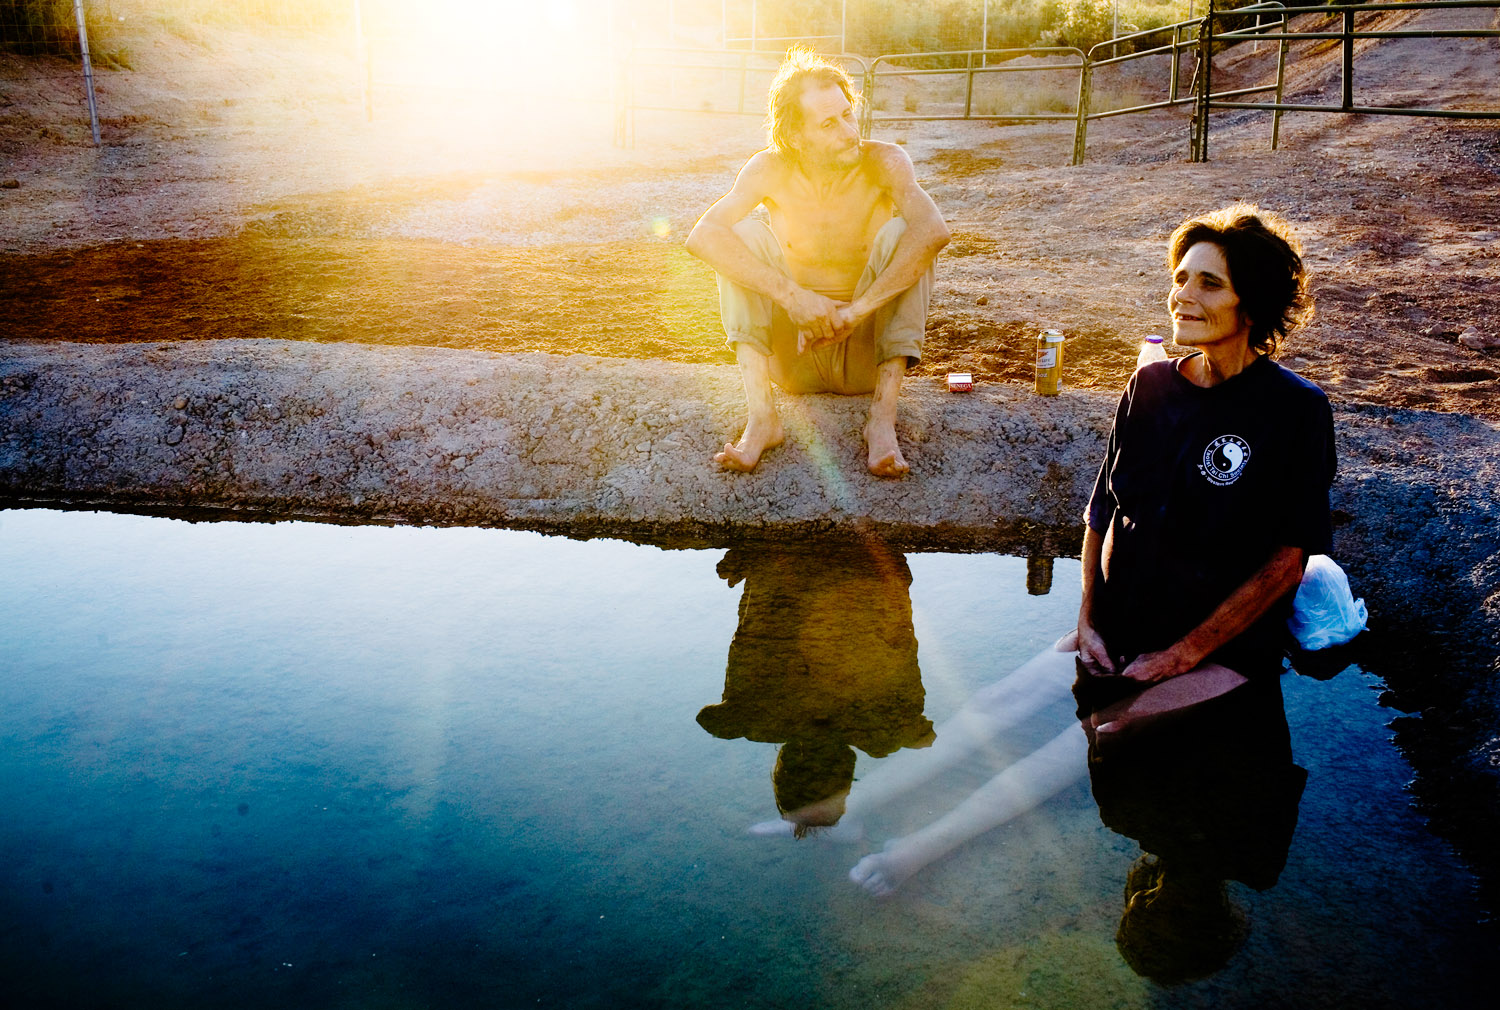 """Following her last wishes, Jerry takes Darla down to a watering hole near the irrigation canals so that she can sit in the water. She said, """"I love the water, this is what I have been waiting for."""" Jerry added, """"I just want to make her last days here peaceful and happy."""""""